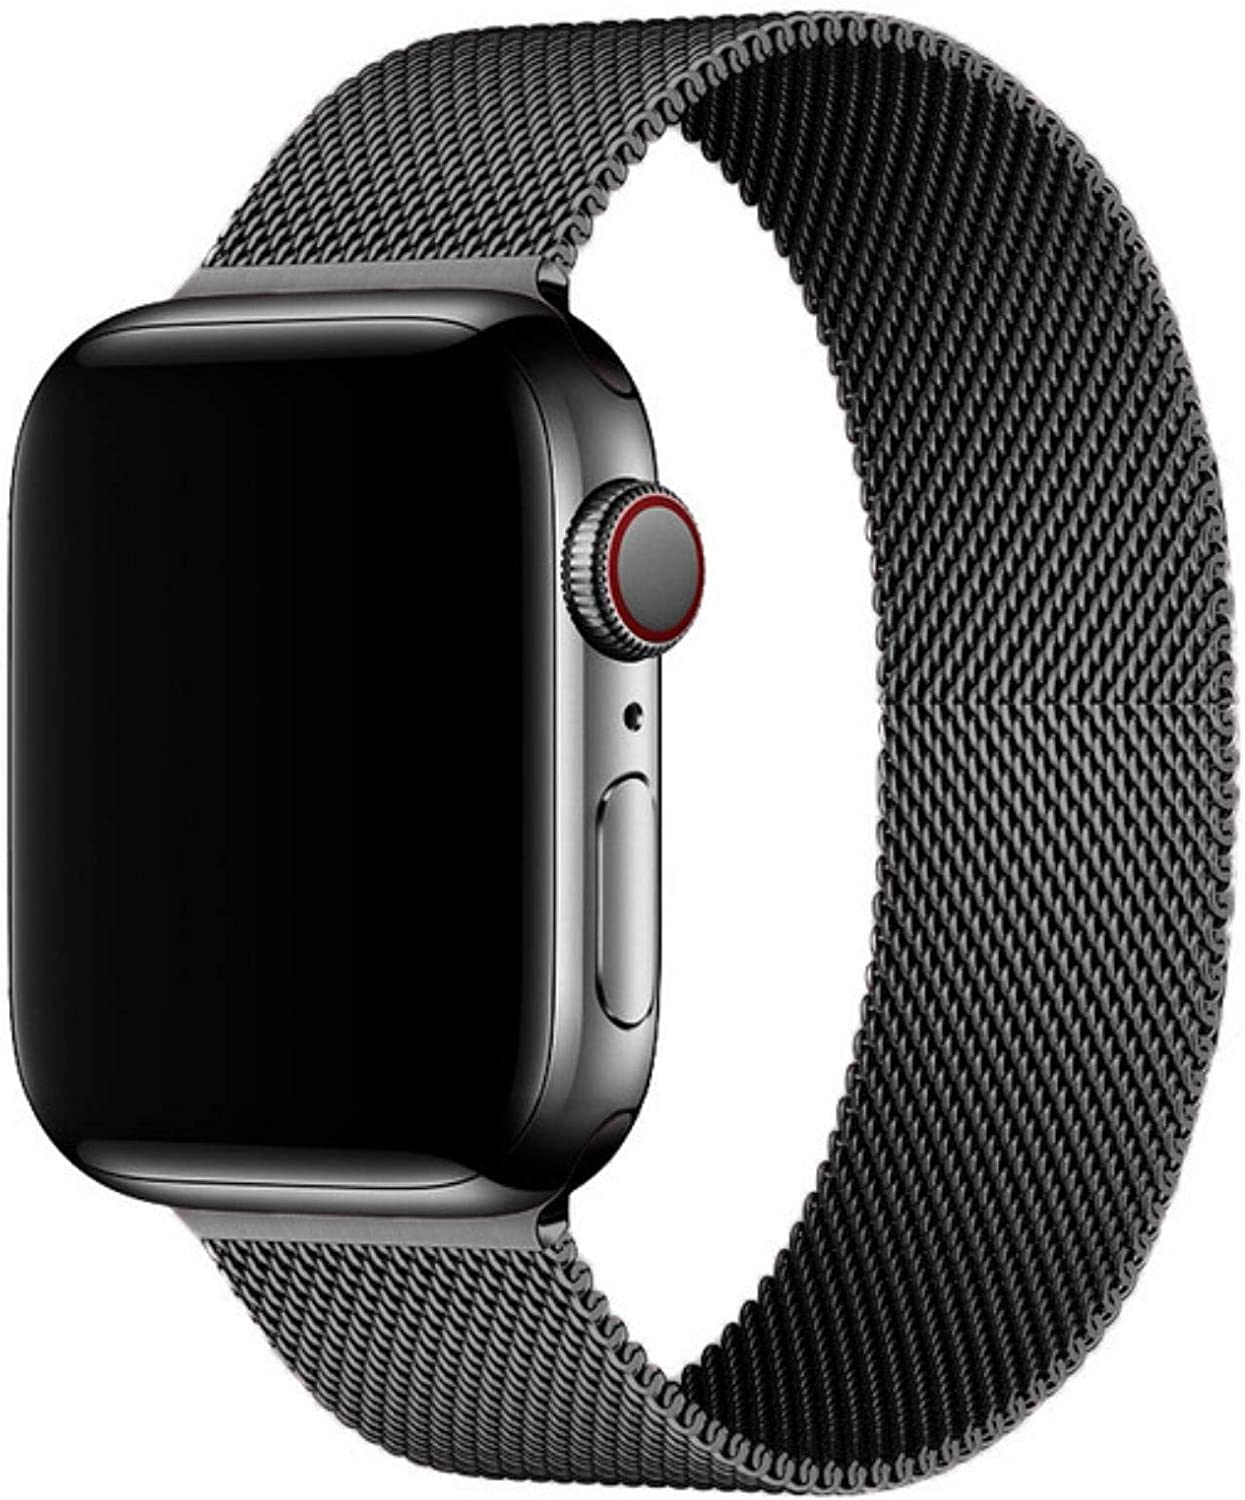 Compatible for Apple Watch Band ,Stainless Steel Magnetic Absorption Strap Metal Mesh Quick Release Wristband Sport Loop for Aple Watch 38 mm 40mm 42 mm 44mm Series 6/SE/5/4/3/2/1